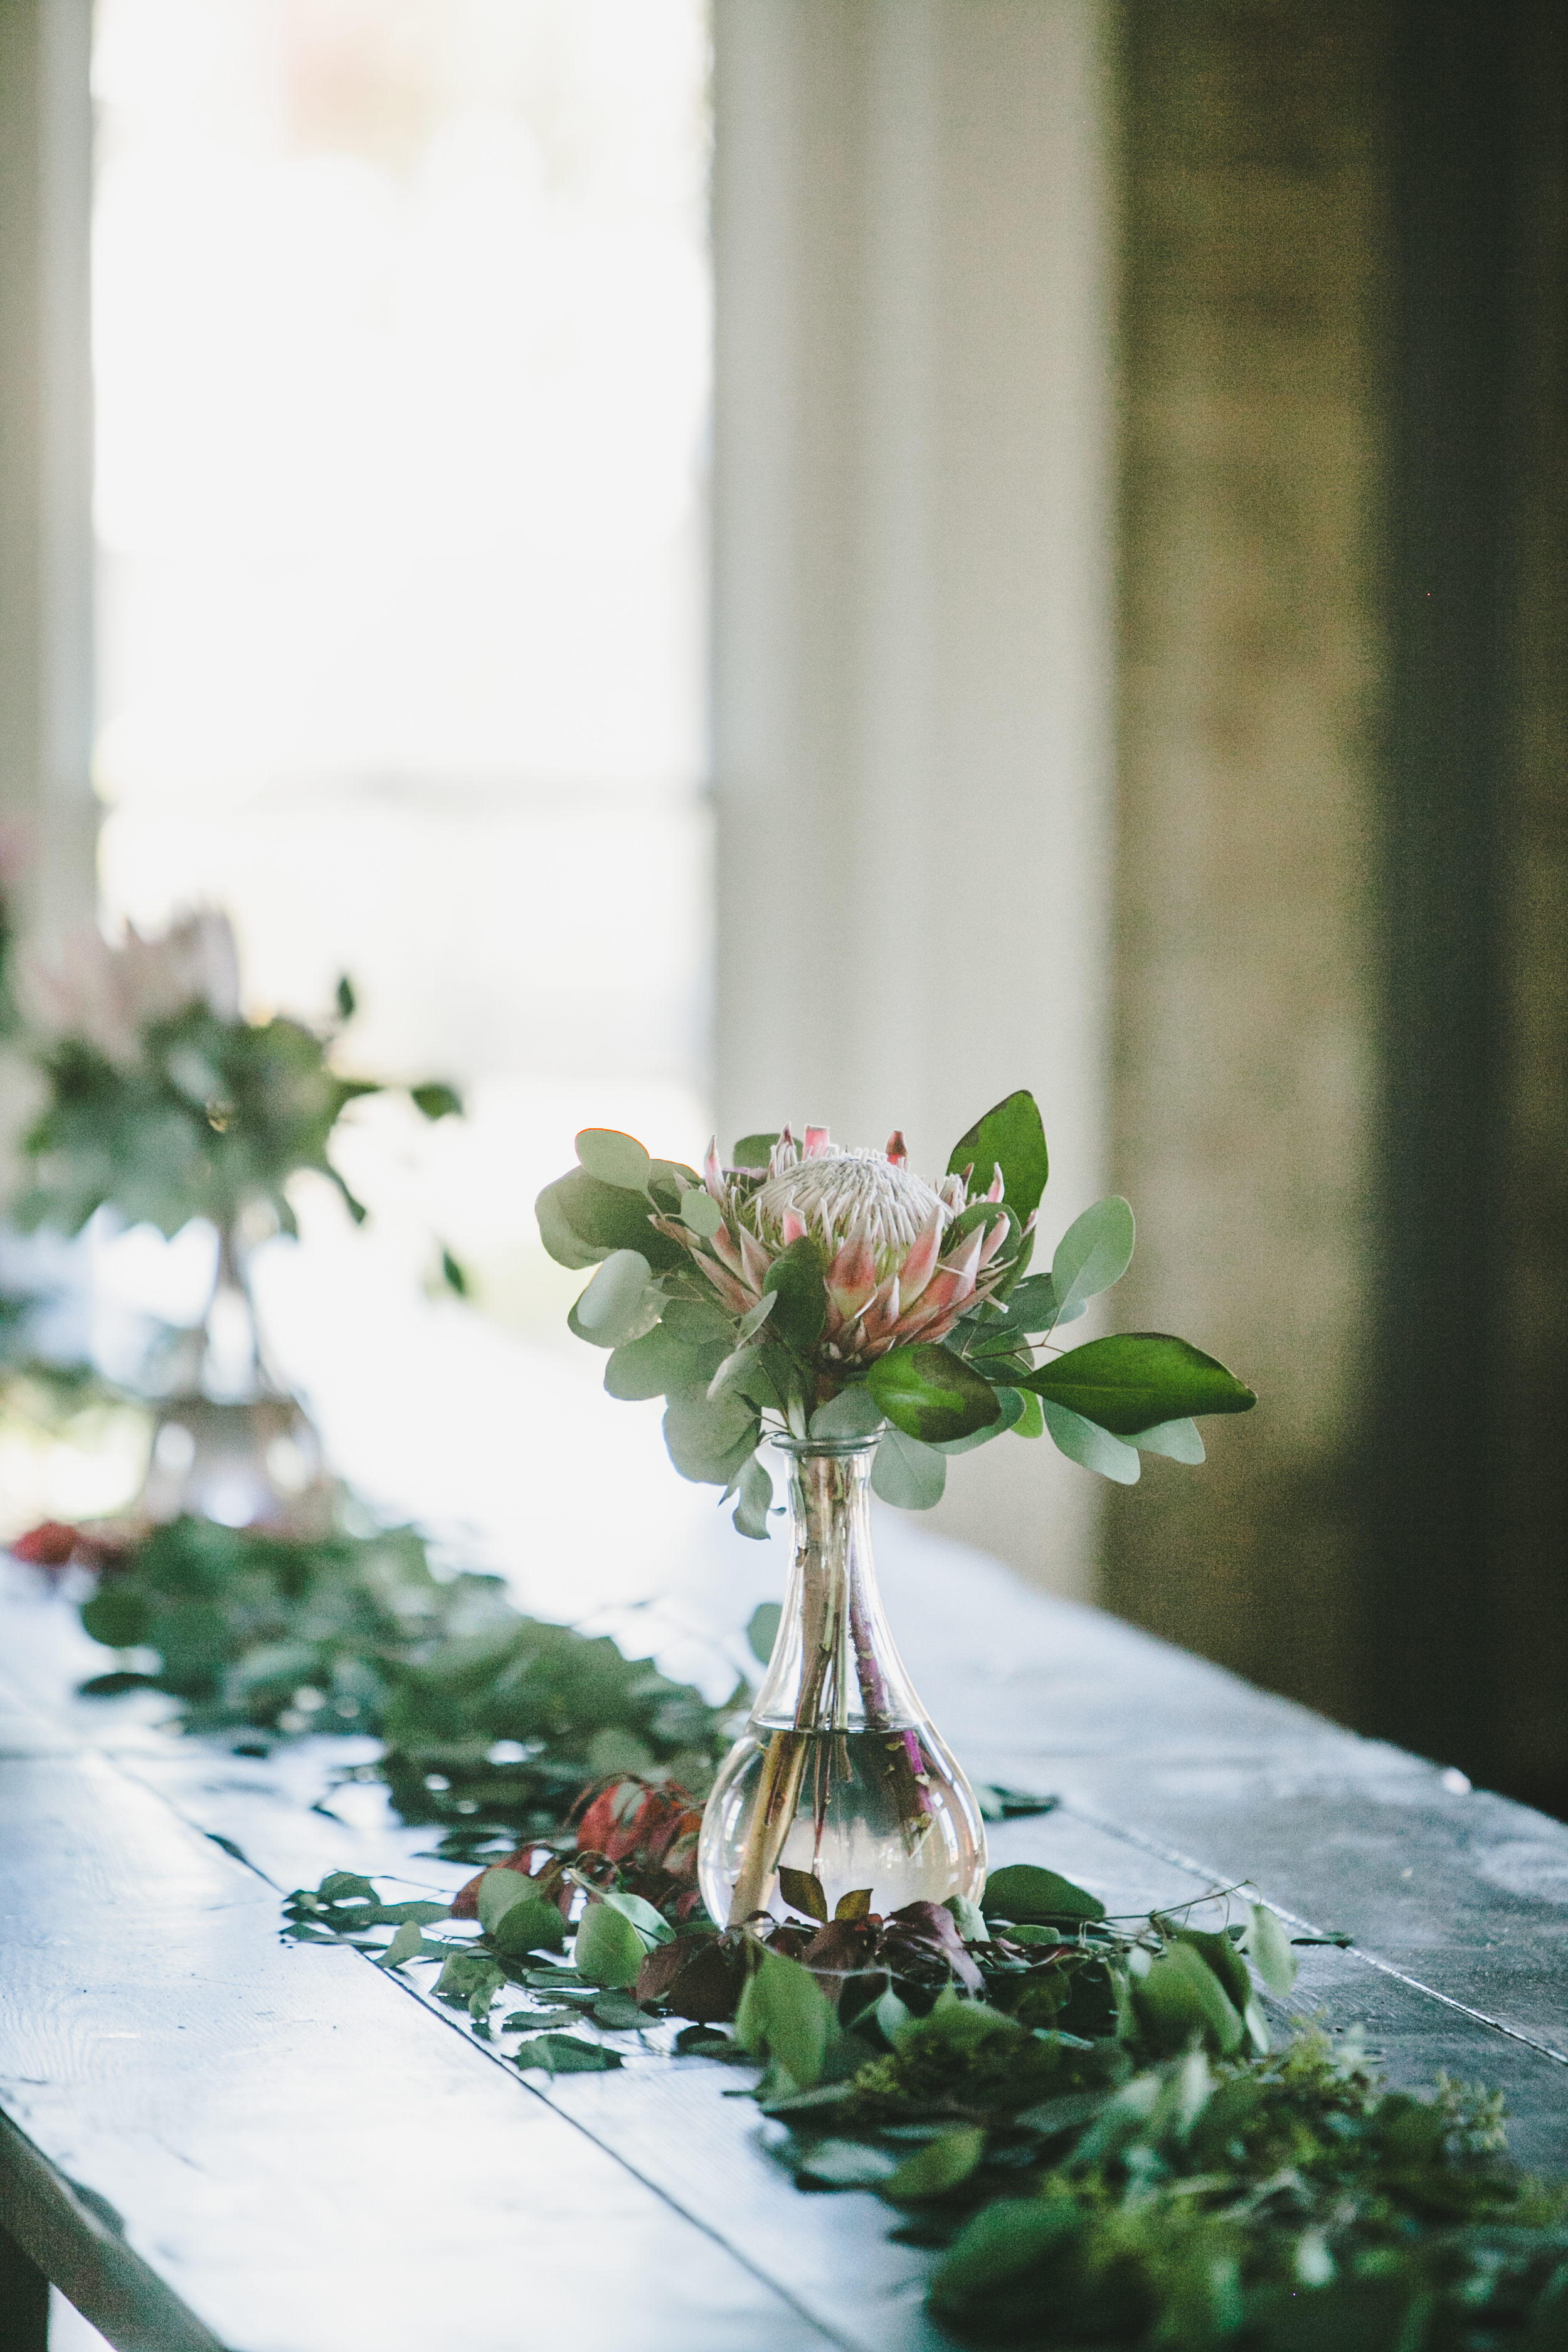 Kneale_Wedding_Table_with_Flowers